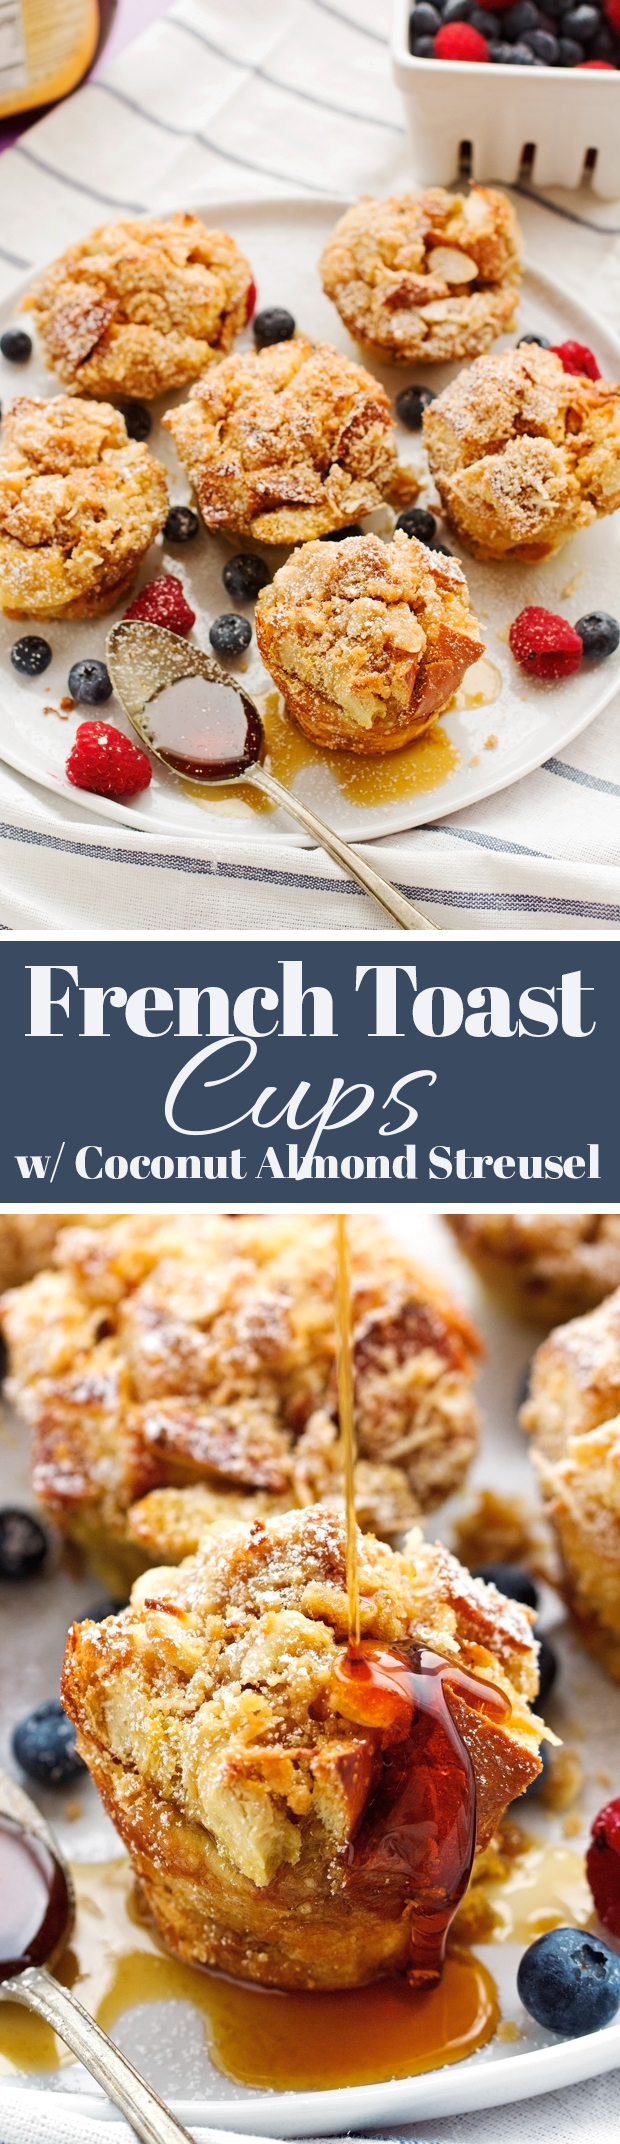 French Toast Cups with Coconut Almond Streusel - Personalized so they're fun to make and even more fun to eat! #frenchtoast #frenchtoastcups #frenchtoastbites | Littlespicejar.com